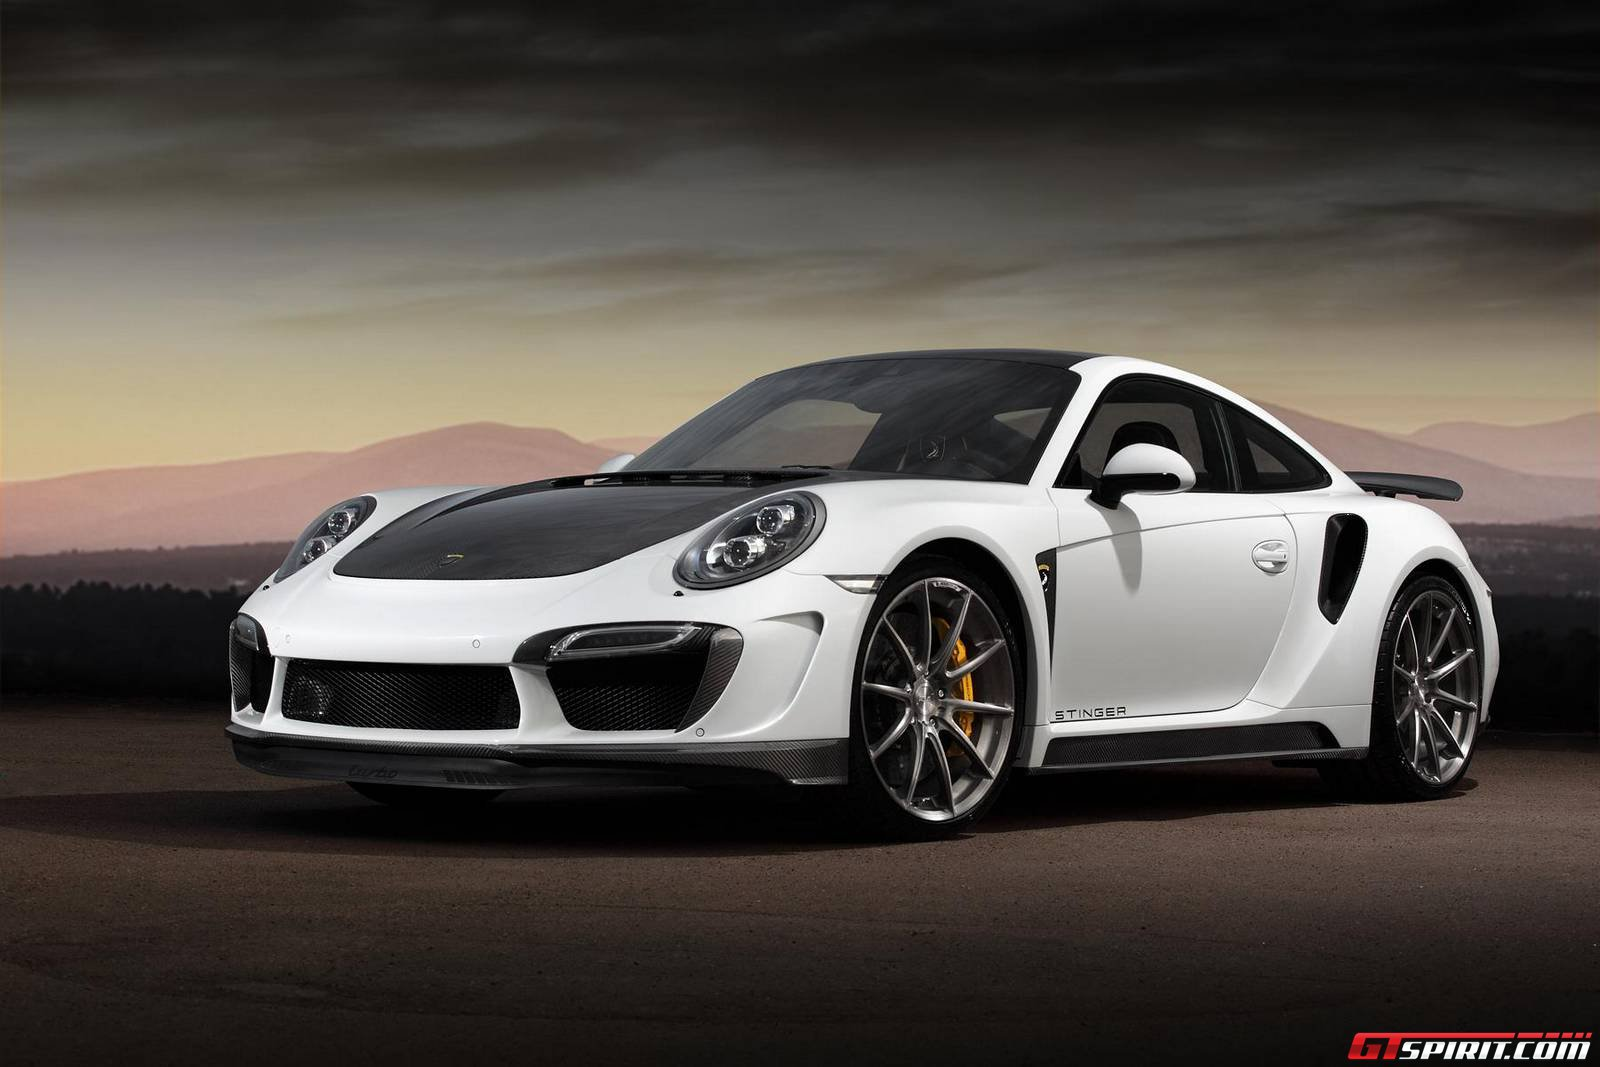 Official topcar porsche 911 turbo and turbo s stinger gtr for Porche americano